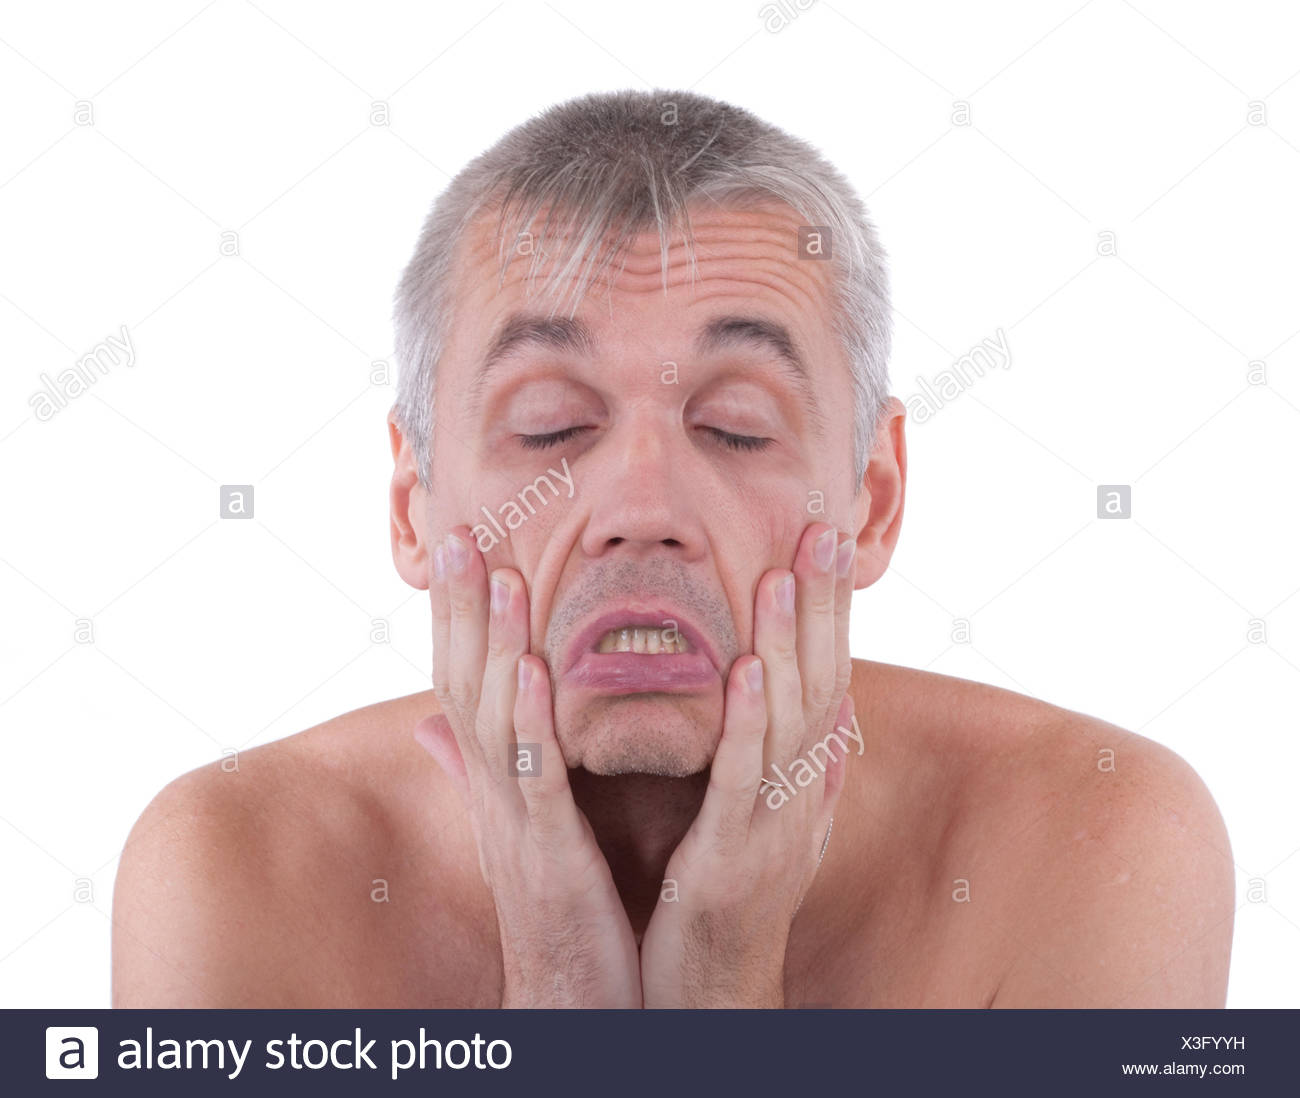 Dissatisfied man - Stock Image